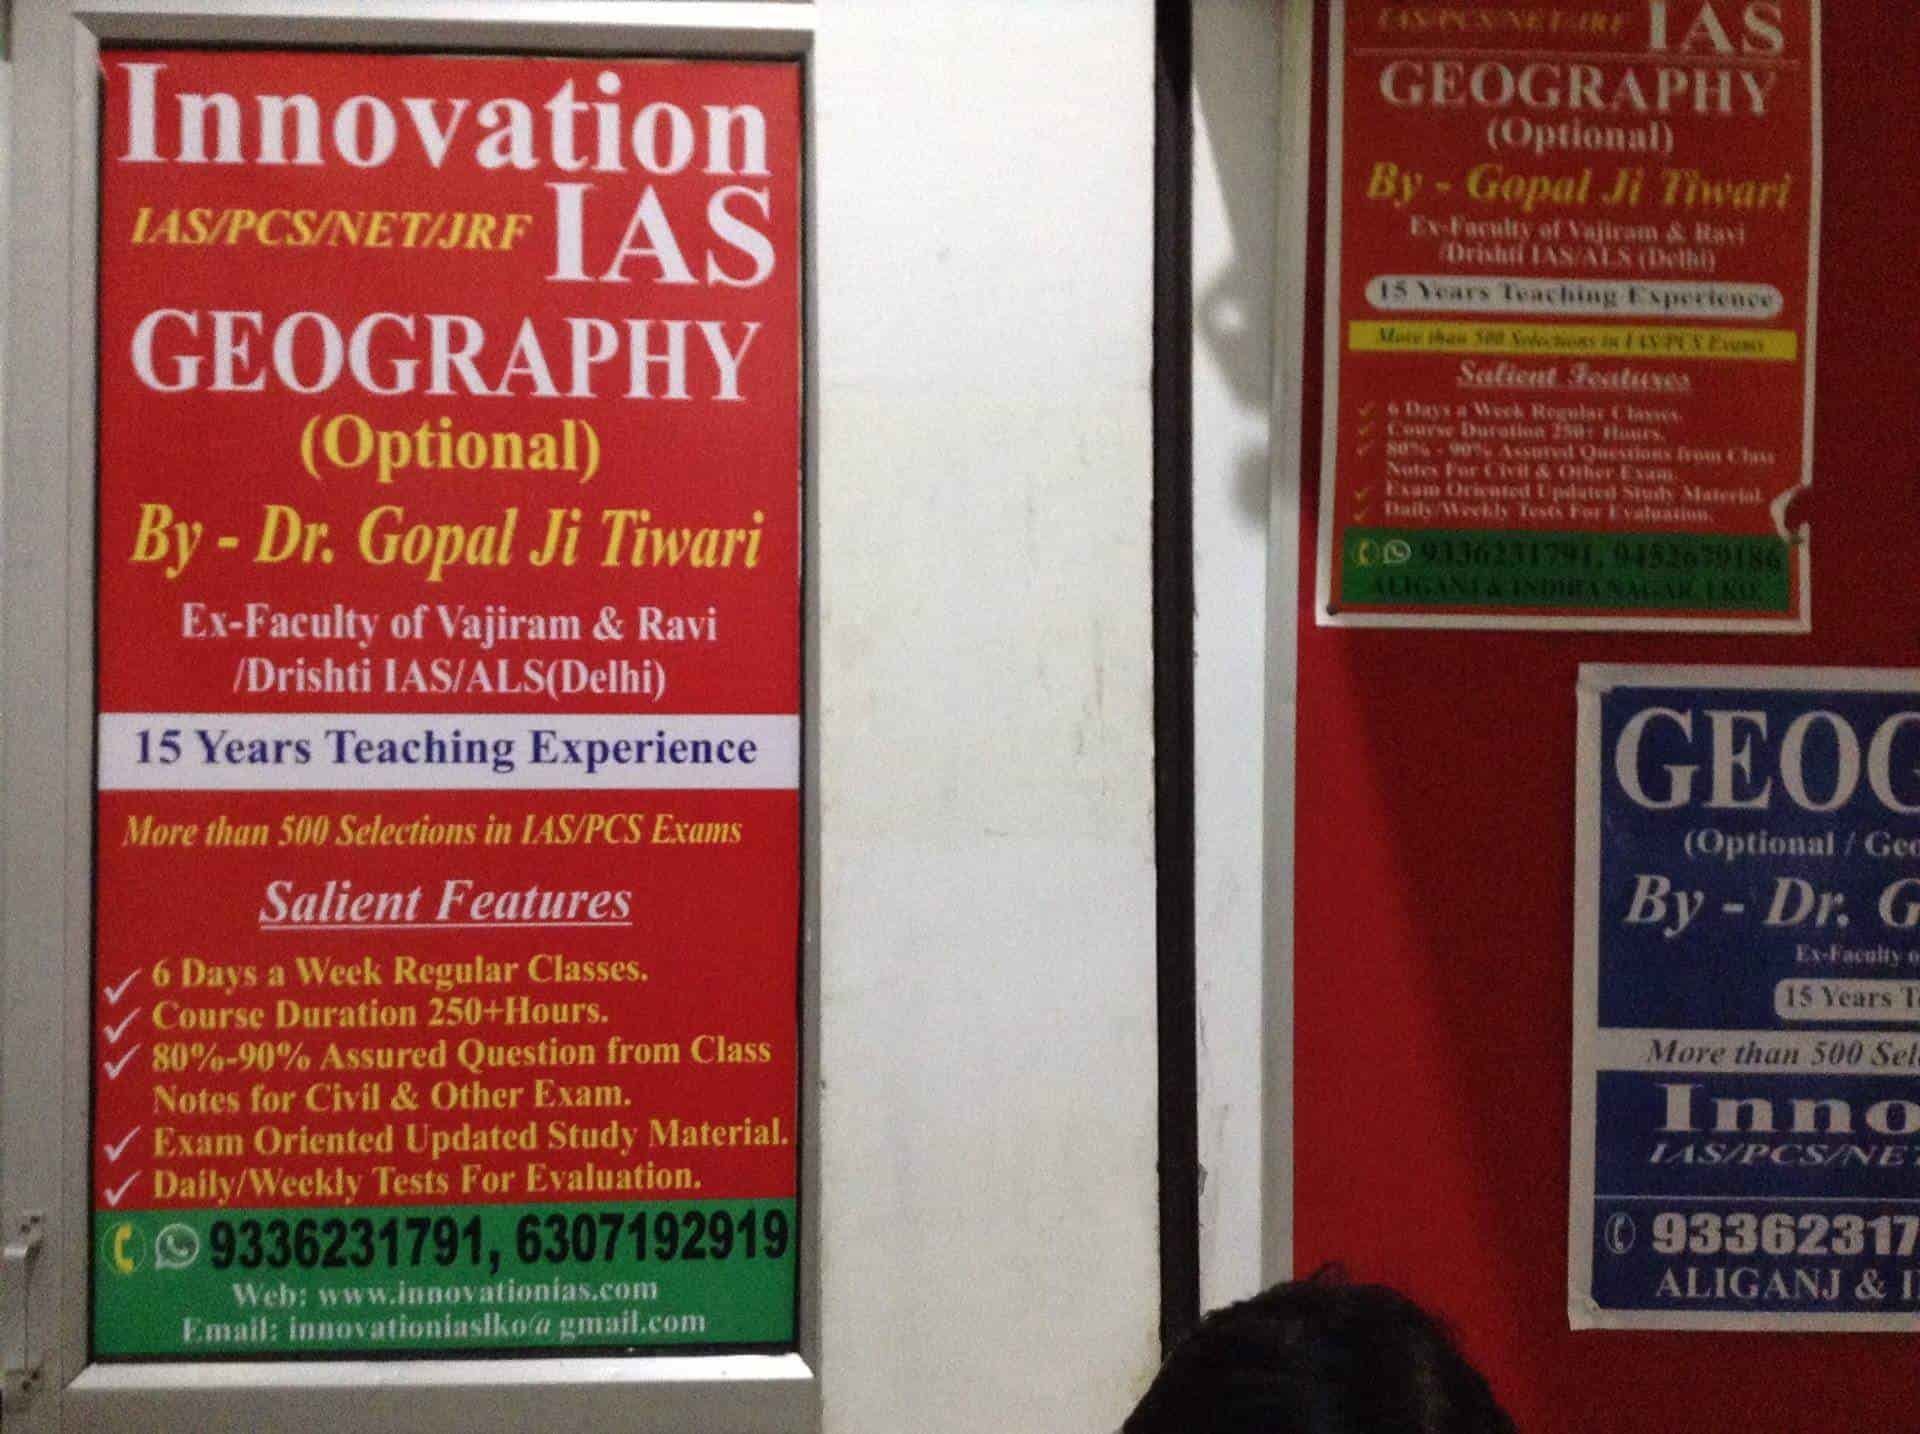 Innovation IAS Reviews, Aliganj, LUCKNOW - 14 Ratings - Justdial